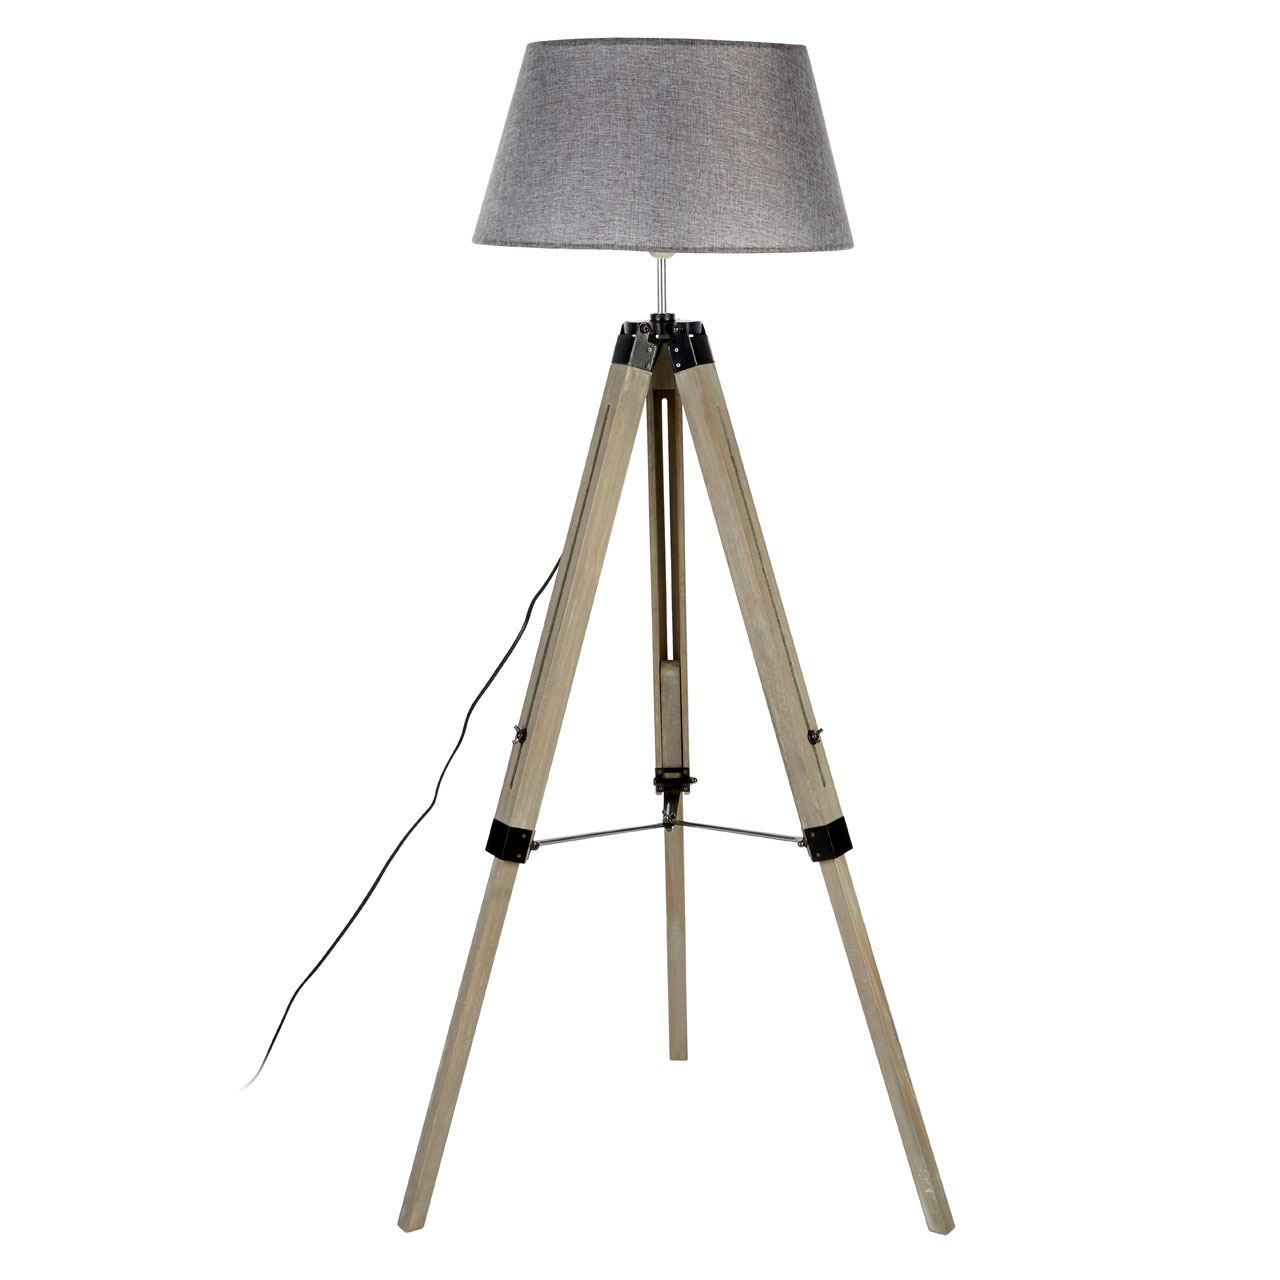 Harper Floor Lamp, Grey Wood Tripod, Grey Shade / Uk Plug